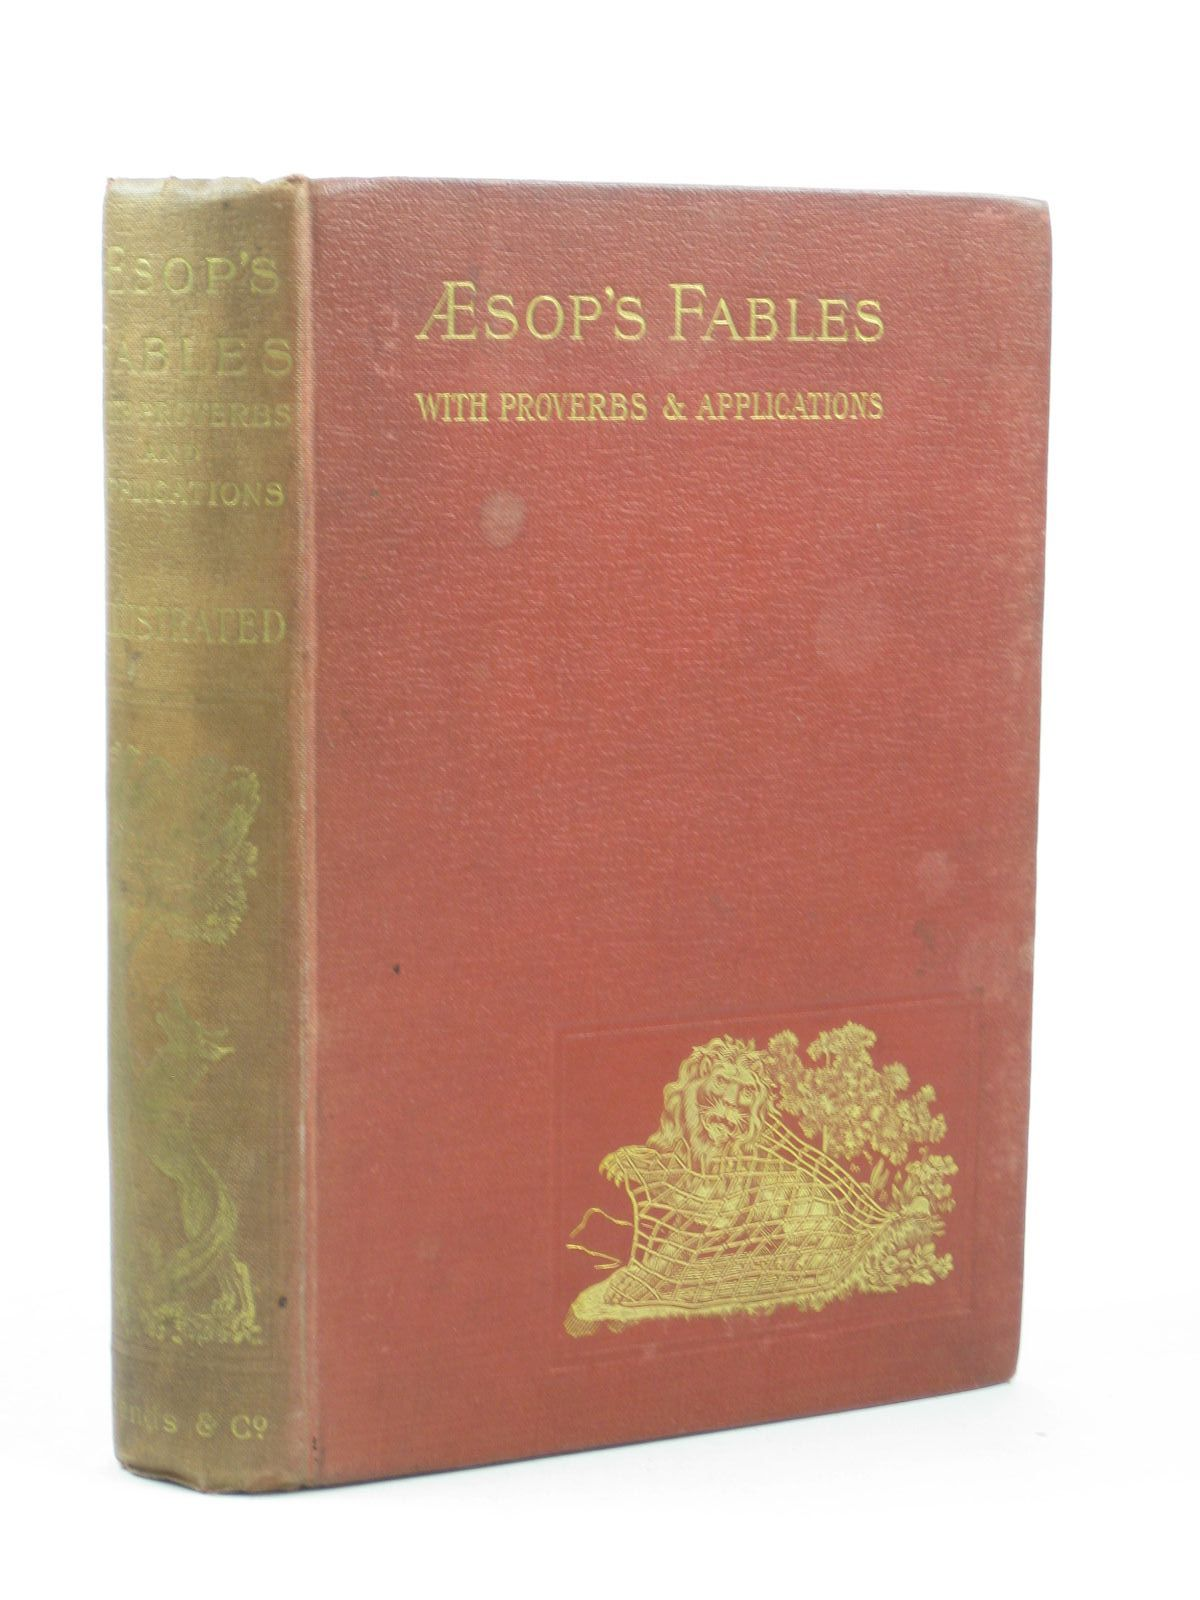 Photo of AESOP'S FABLES written by Aesop, published by Bliss, Sands & Co. (STOCK CODE: 1312425)  for sale by Stella & Rose's Books